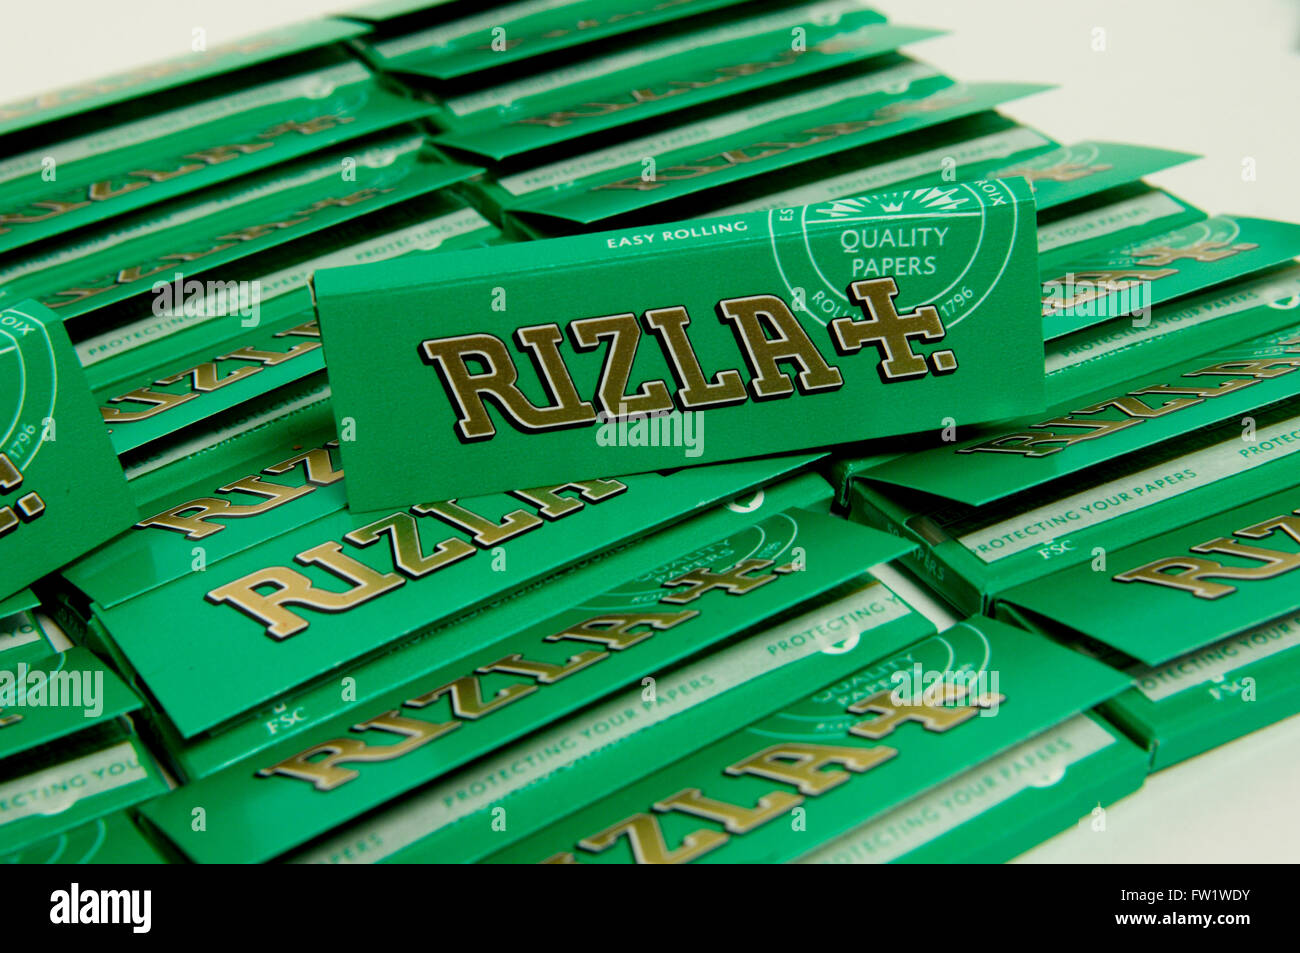 Rizla Rolling Papers Stock Photos Rizla Rolling Papers Stock